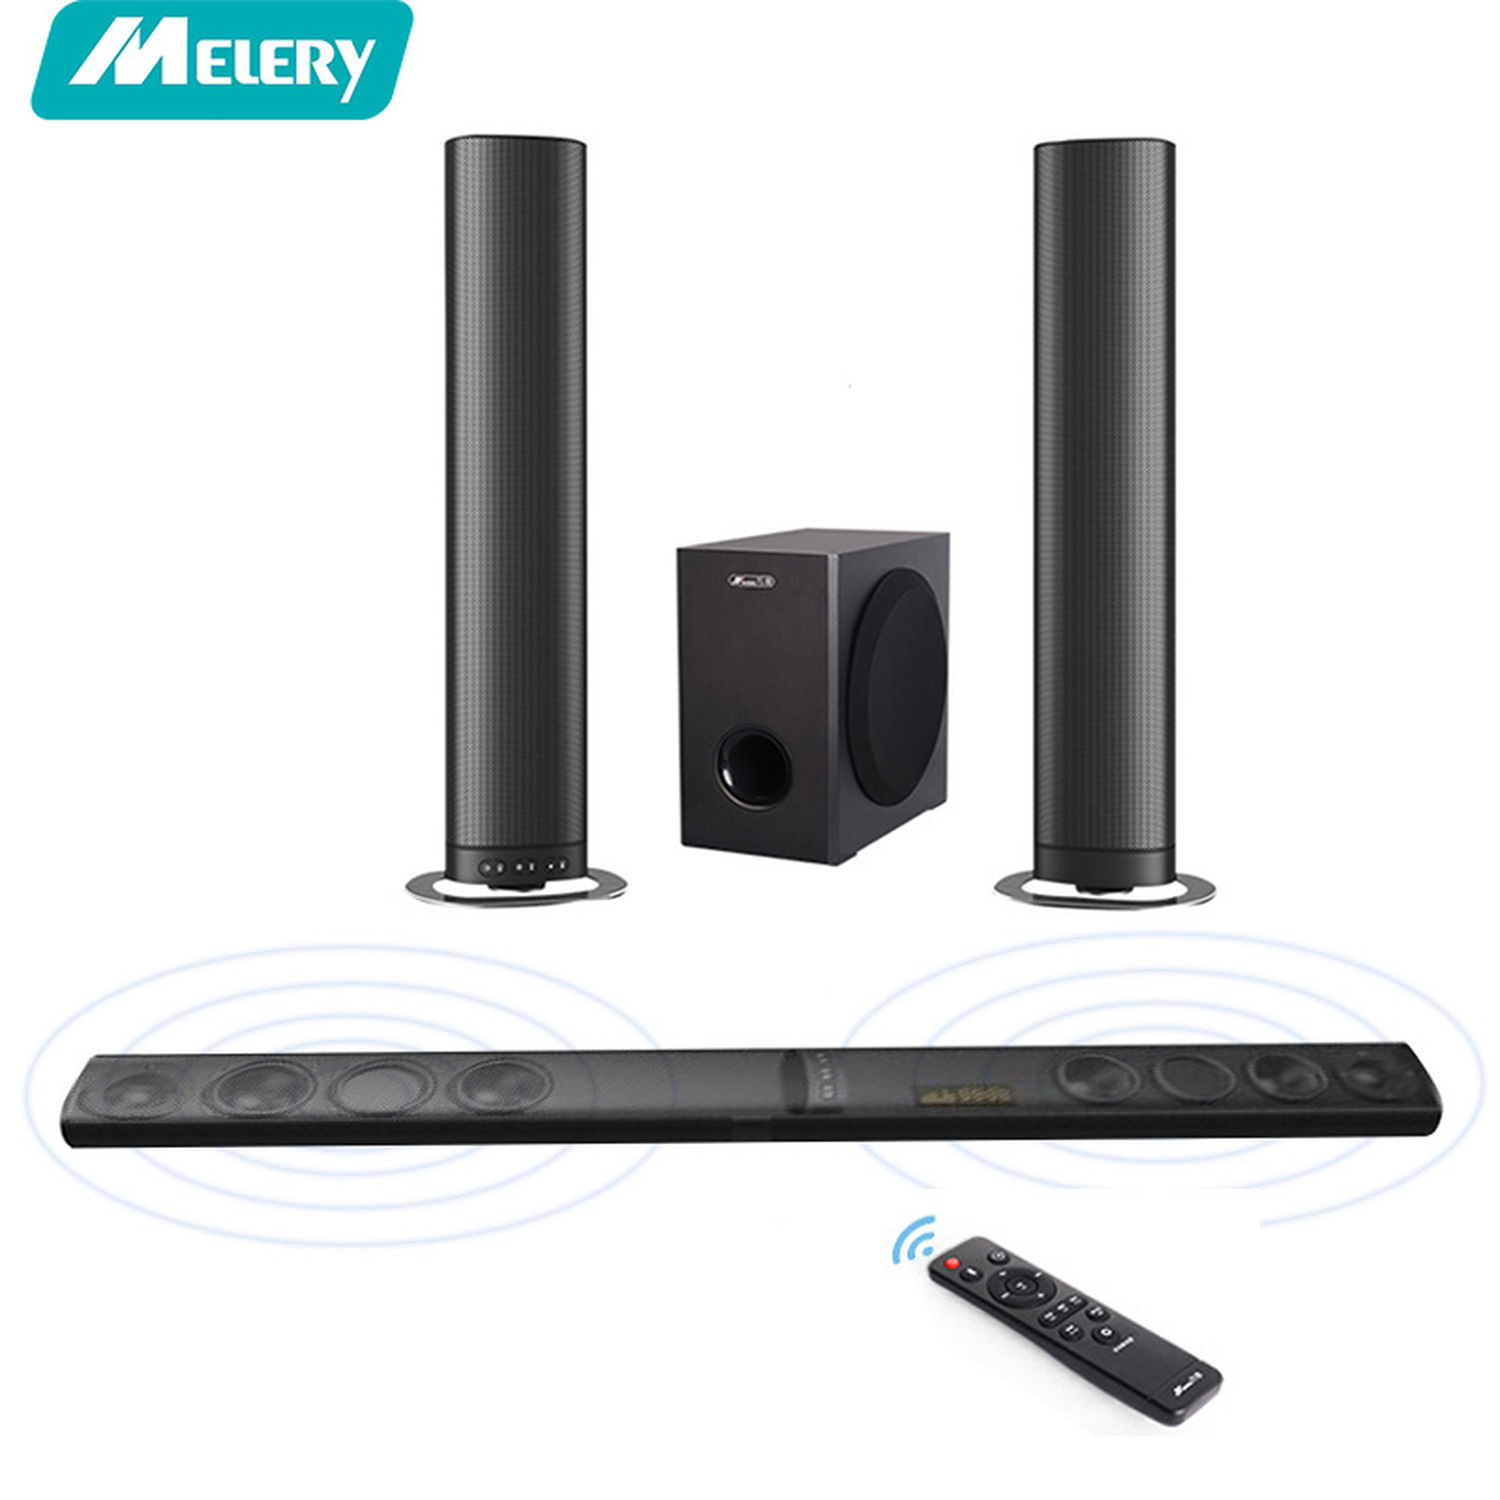 Detachable Wireless Soundbar TV Speakers Bluetooth Home Theater 5.1 Woofer Surround Sound System for xiaomi Projetor PC philips 85415vic1